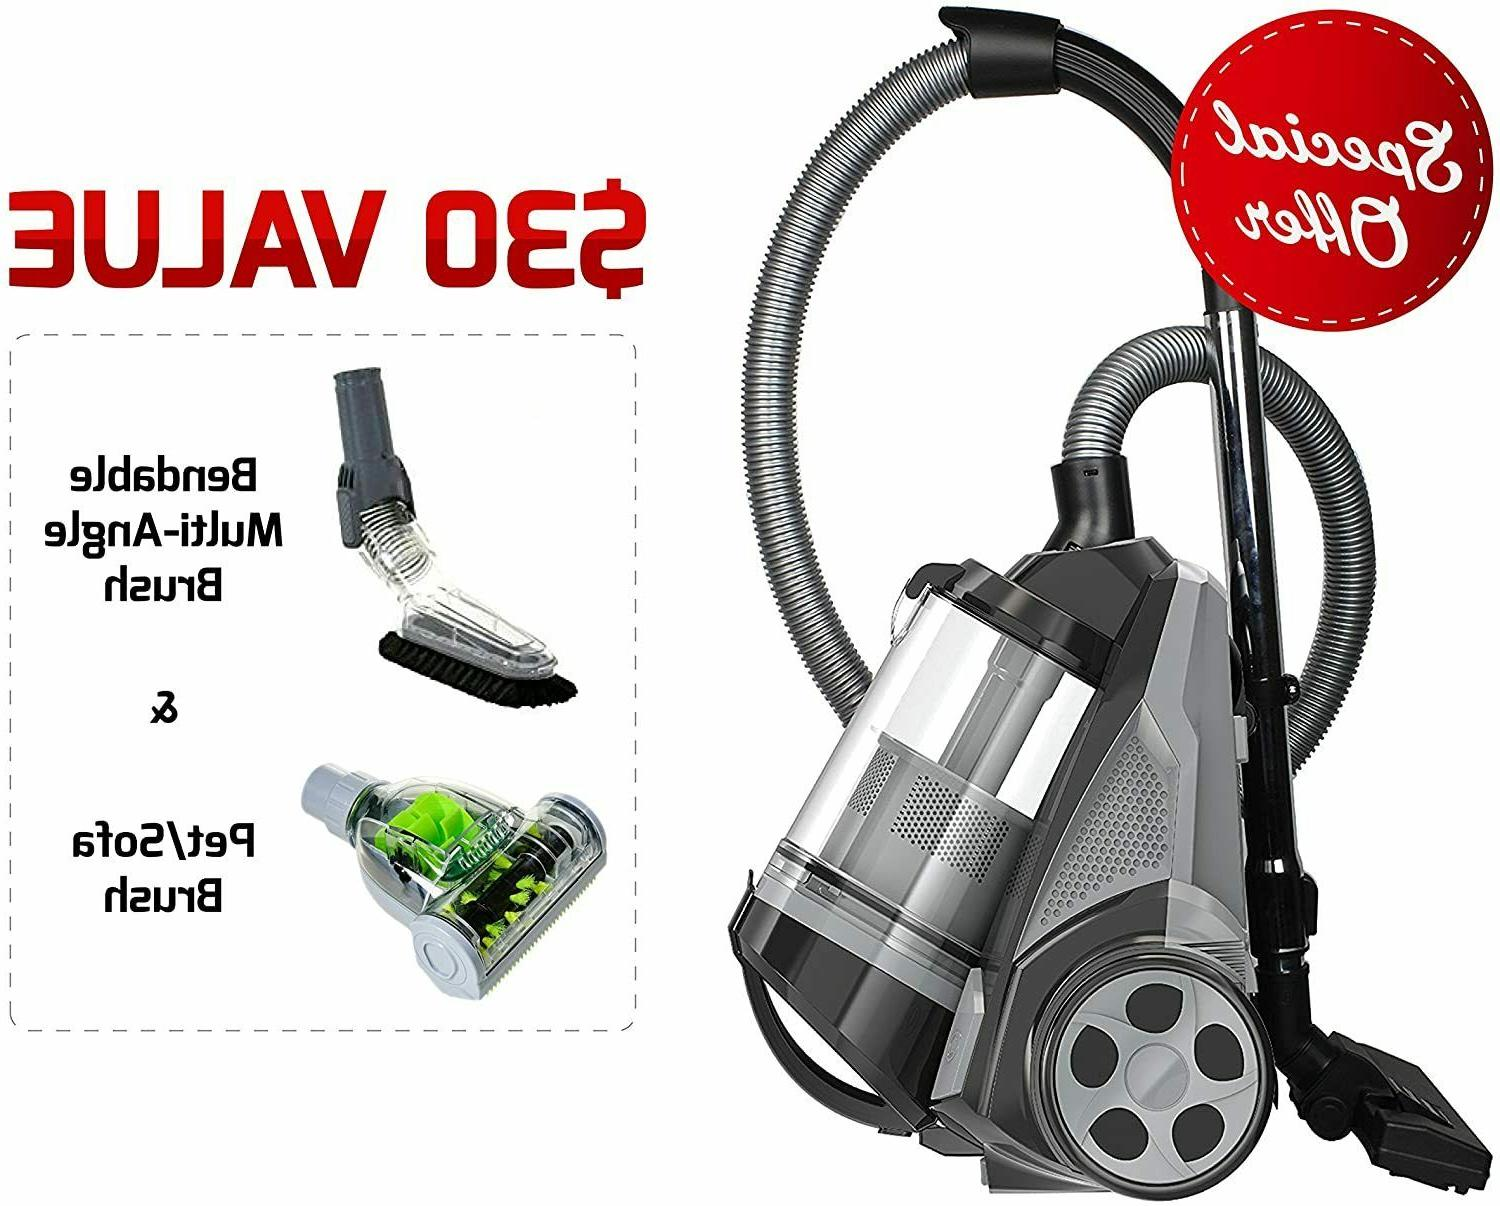 Ovente Bagless Canister Cyclonic Vacuum 1400W Bendable Multi